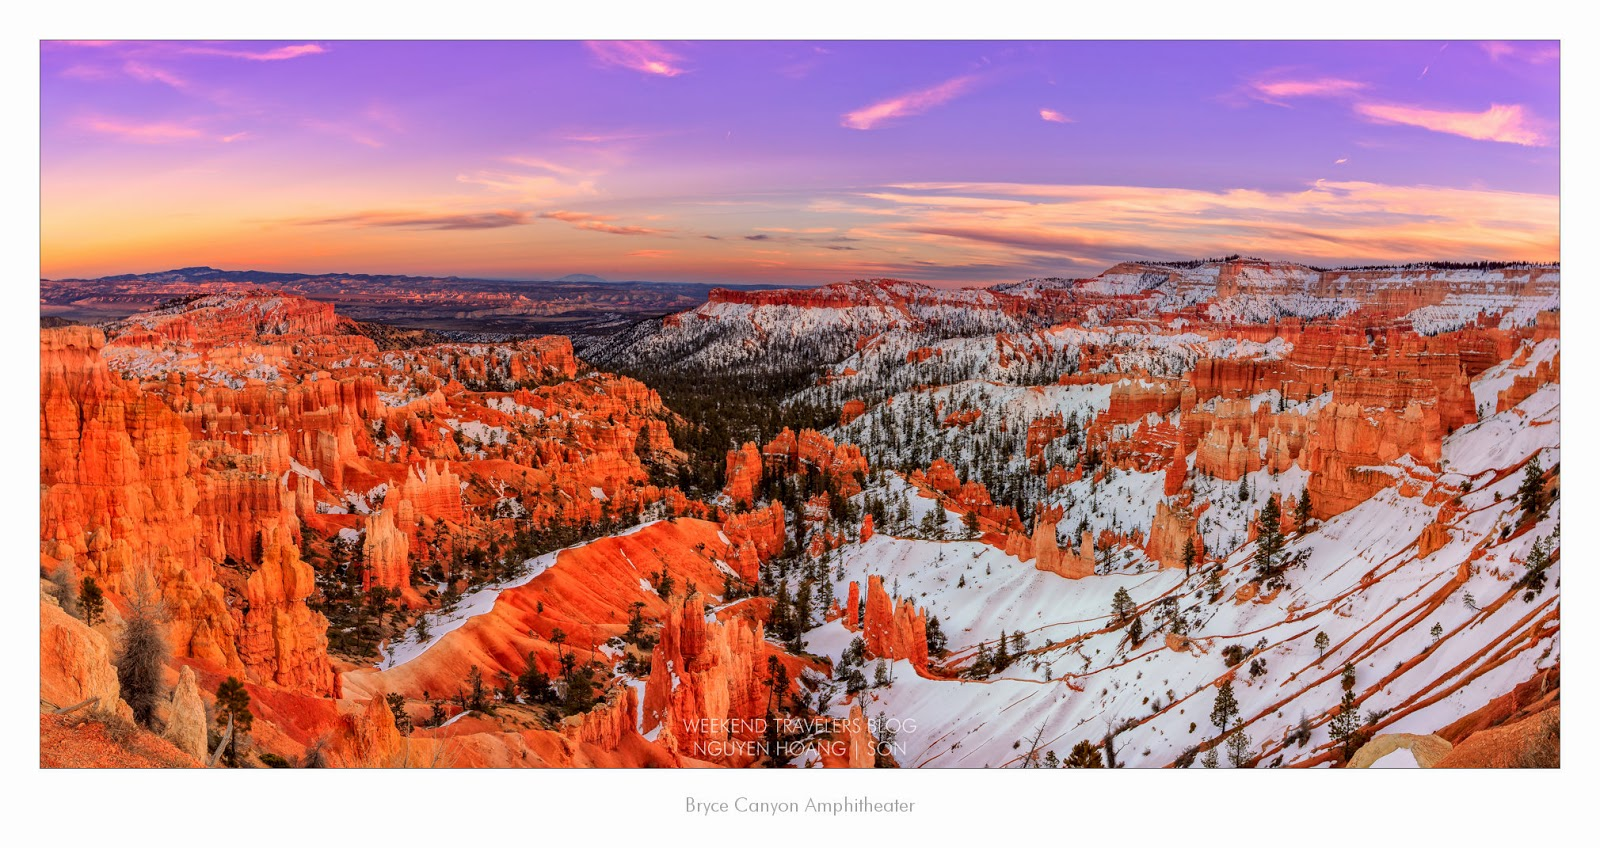 The Bryce Canyon Rim Trail Amphitheater